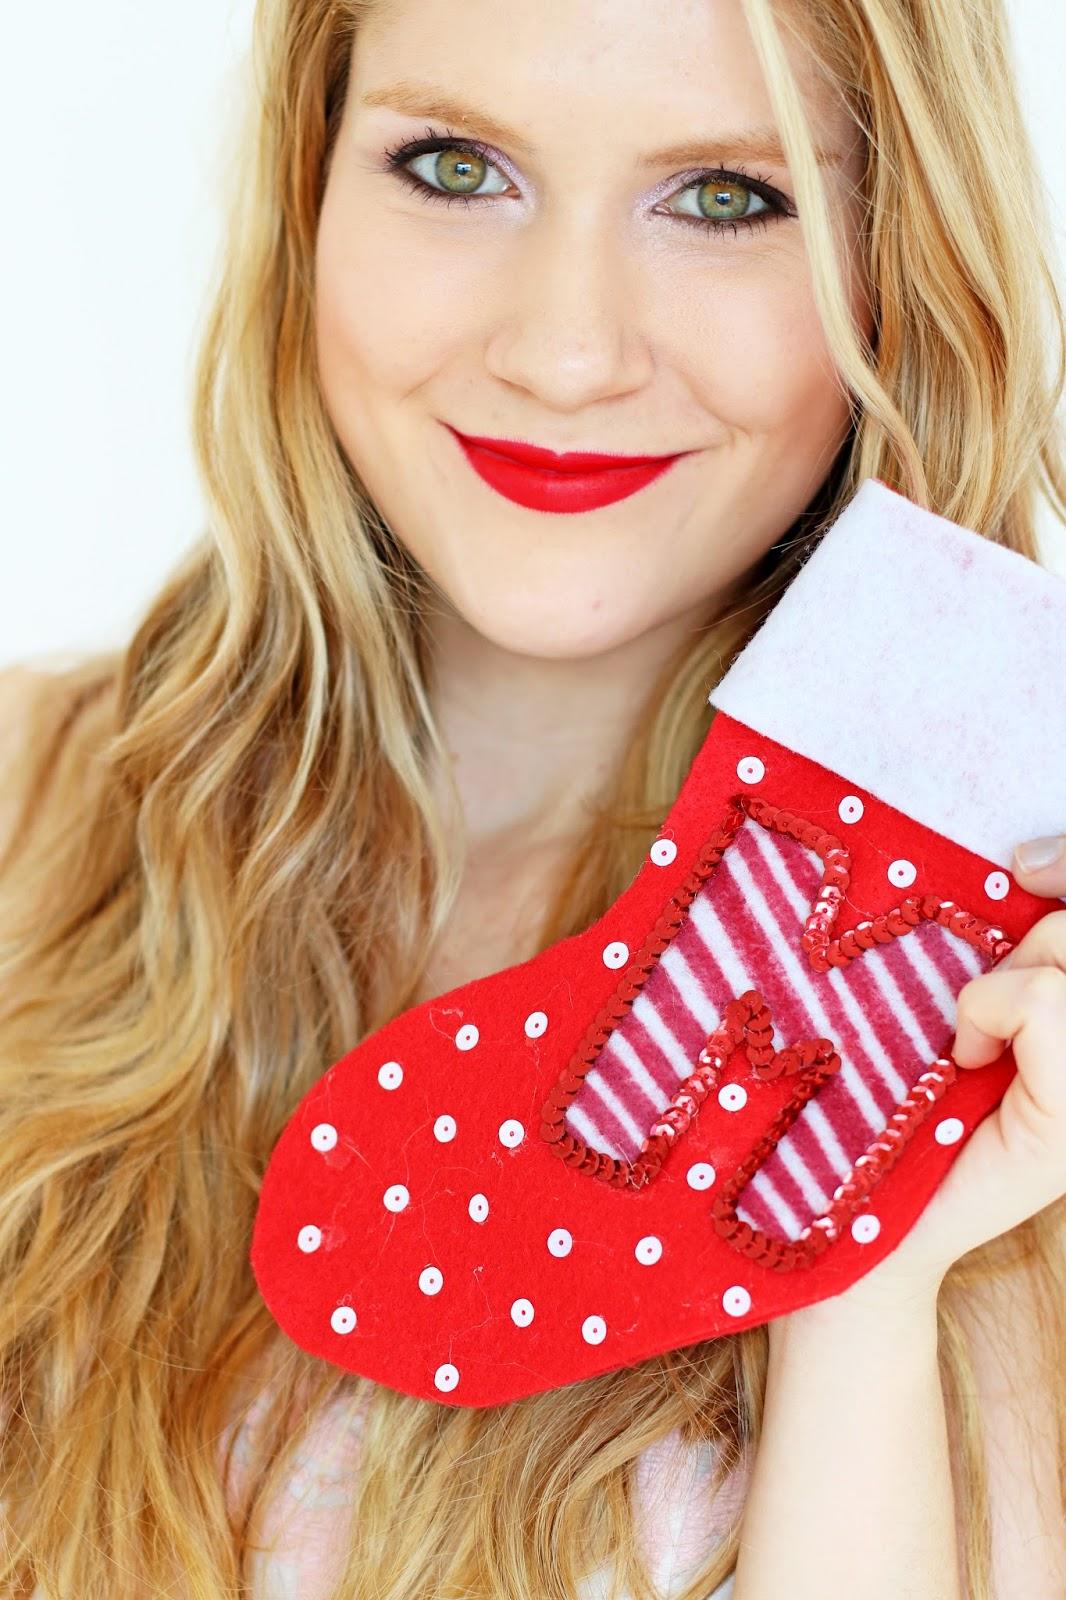 Make unique personalized stockings for Christmas this year! Its really easy, just click through for the full tutorial